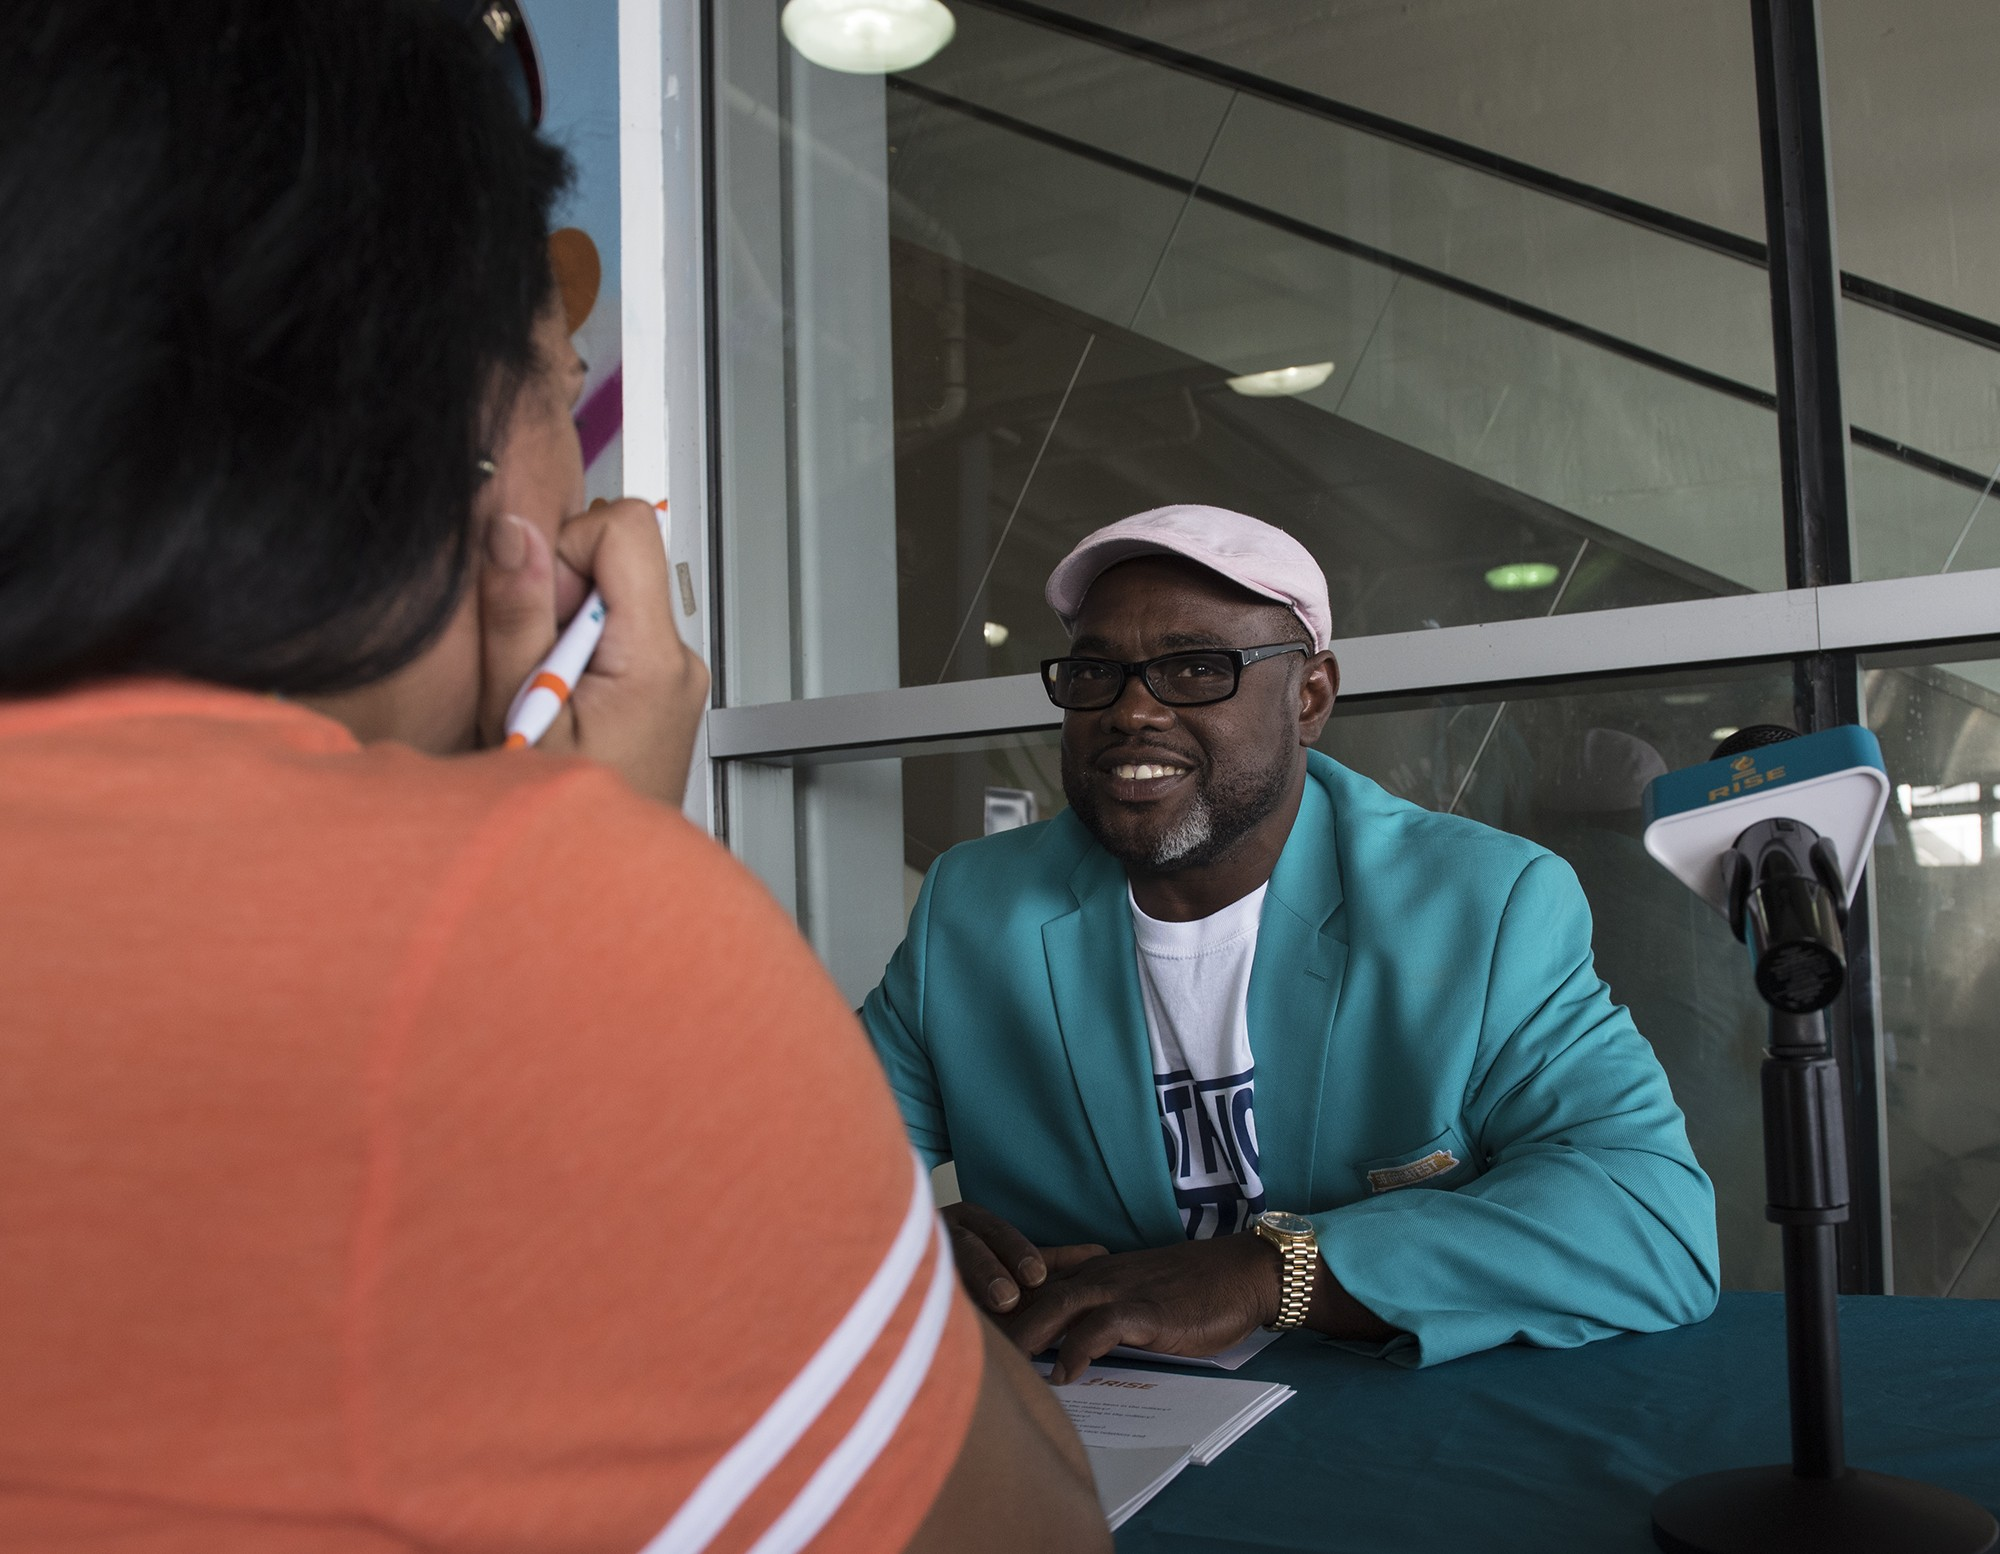 Miami Dolphins Alumni Mark Duper (1982-1992)talks with Laura Martinez of Adults Mankind before the Jets Dolphins game on Sunday, Oct. 22, 2017, in Miami Gardens, Fla. (Donald Edgar/El Latino Digital)